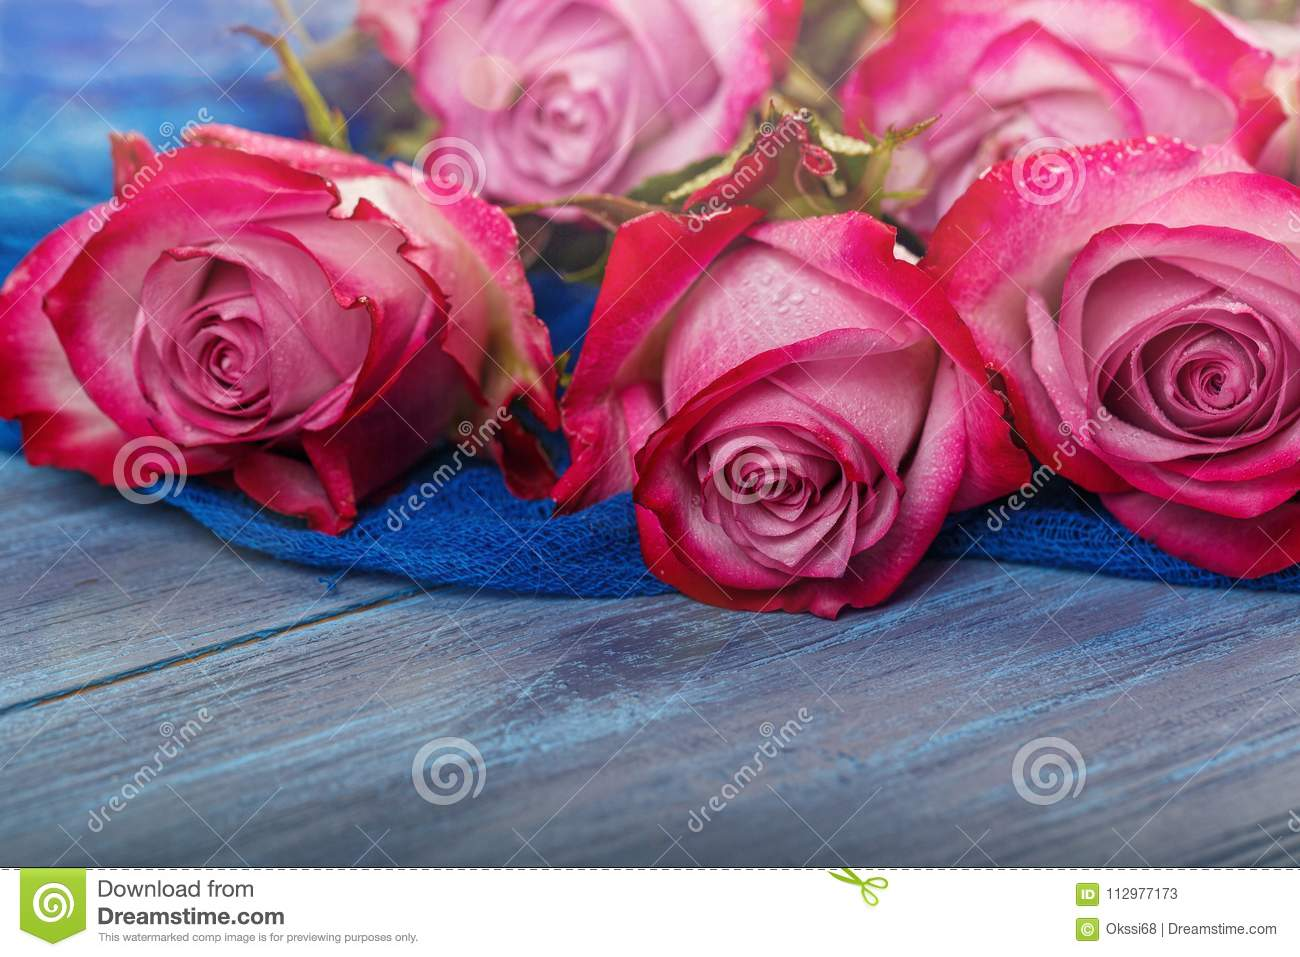 Red roses on a blue background